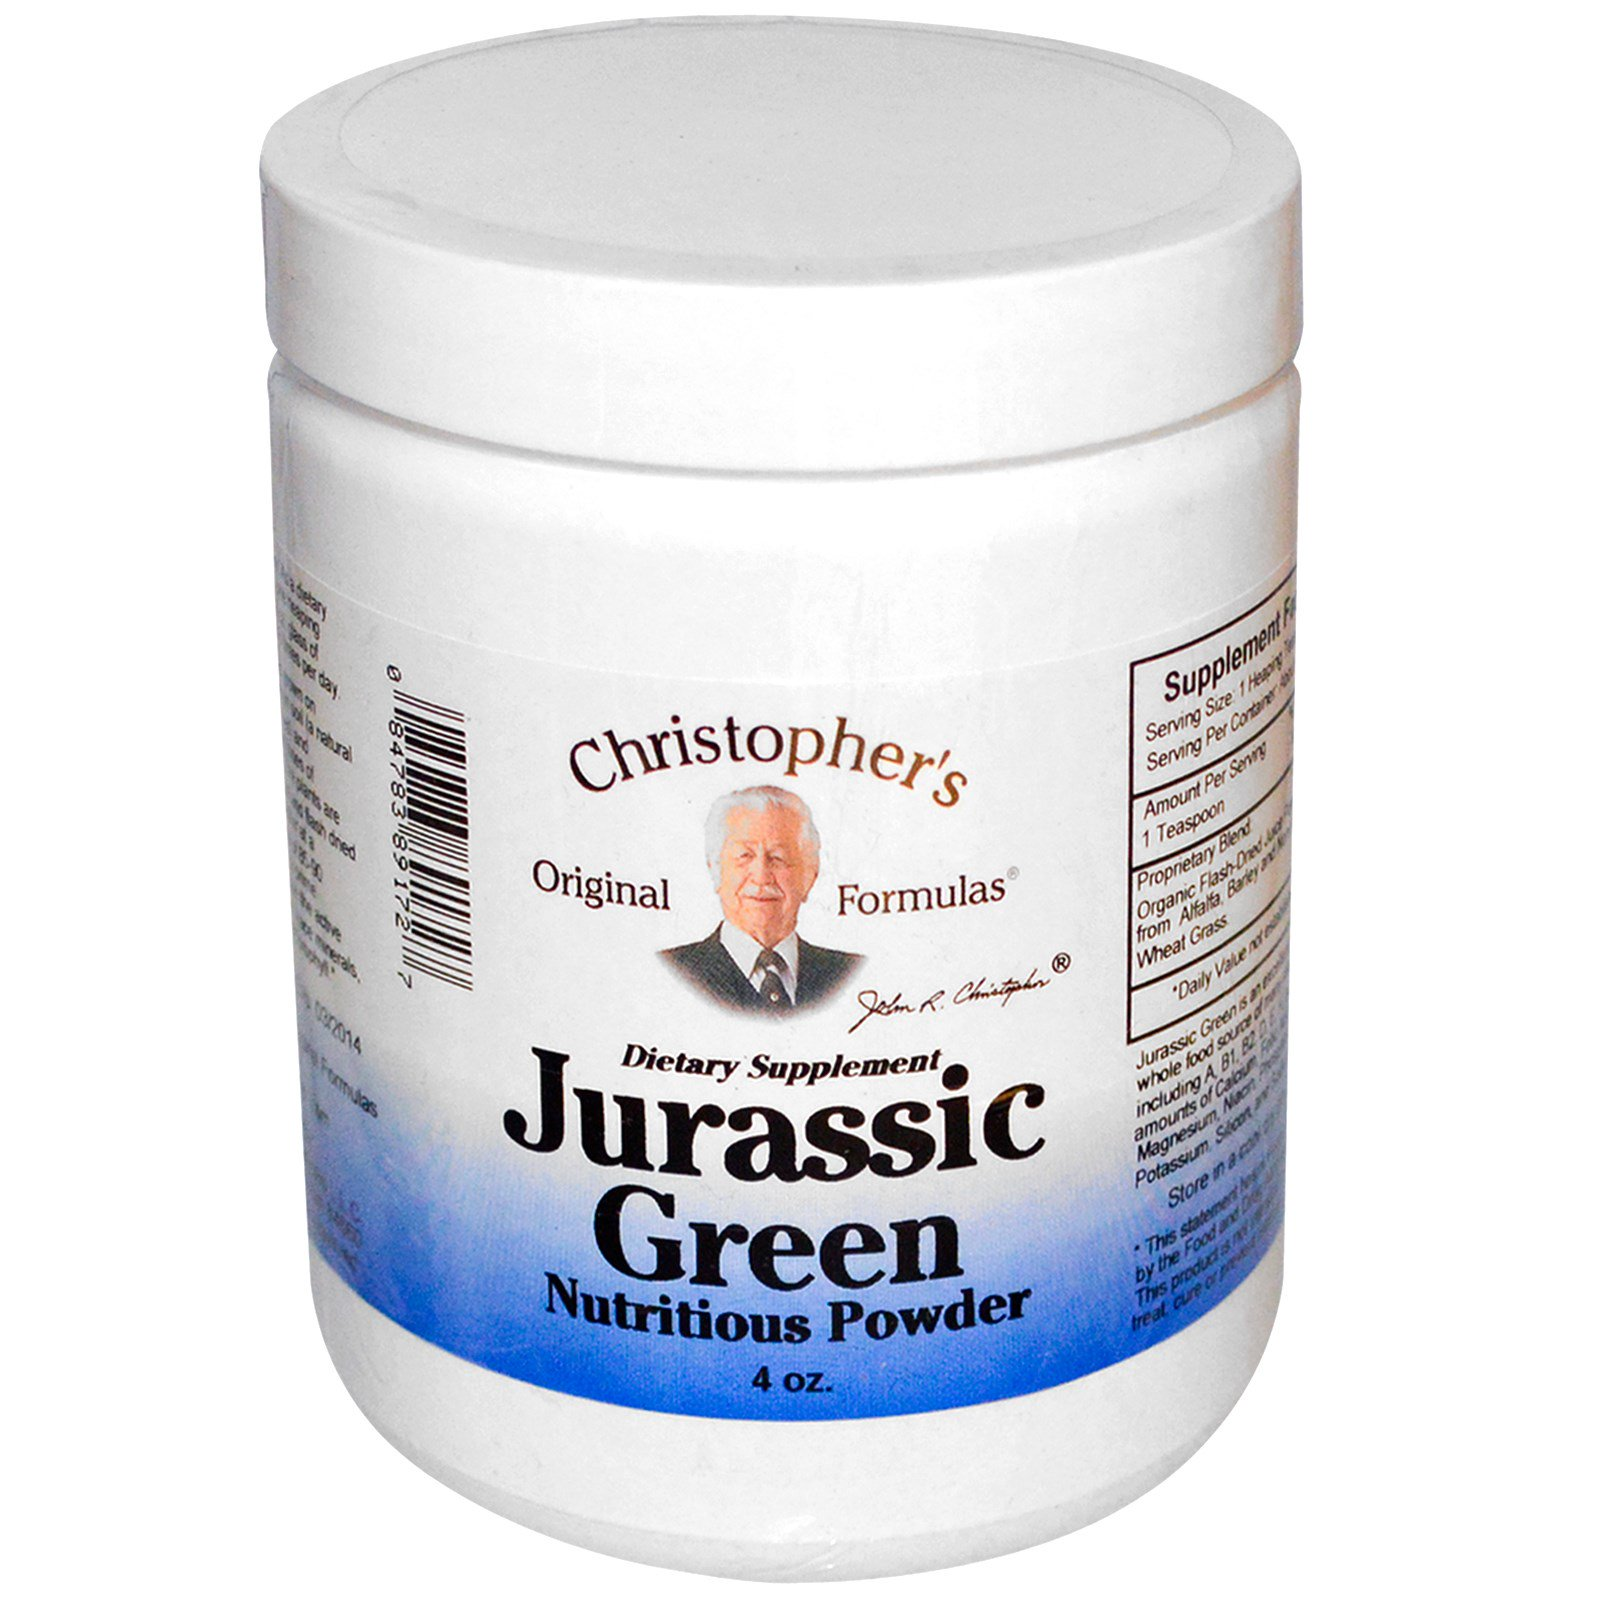 Christopher's Original Formulas, Jurassic Green, Nutritious Powder, 4 oz  (Discontinued Item)